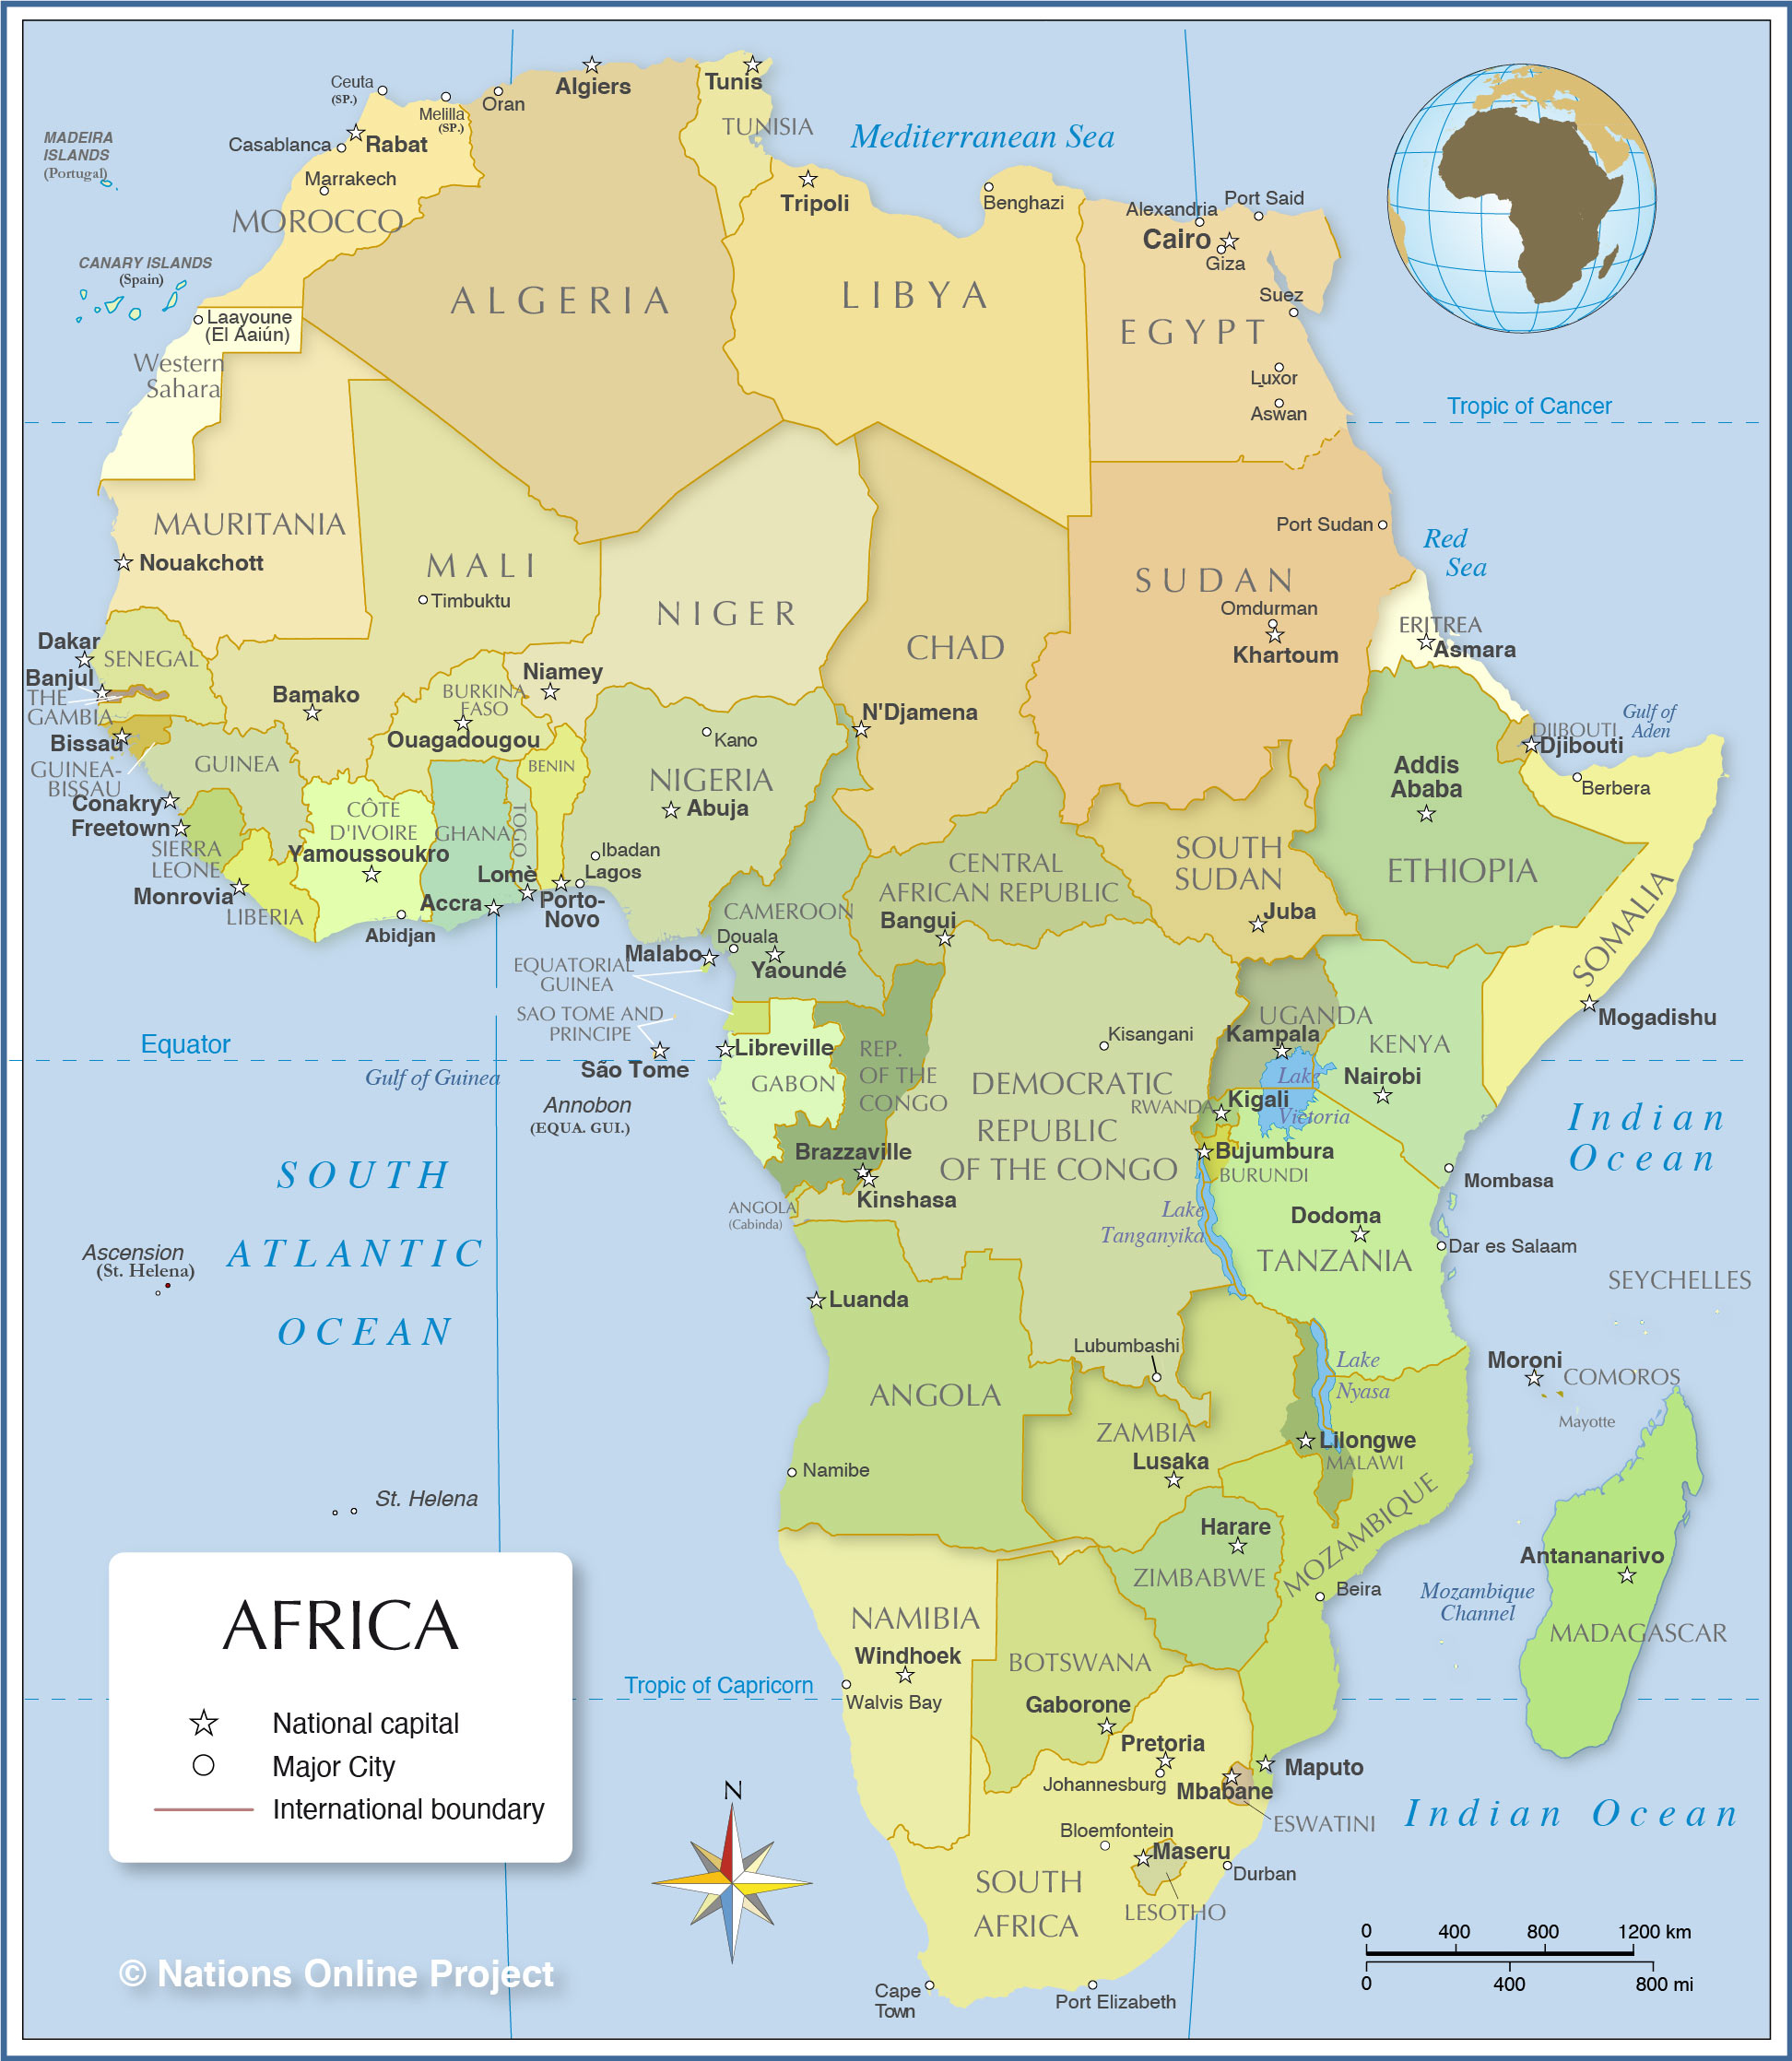 Map Of Africa Countries Labeled.Political Map Of Africa Nations Online Project